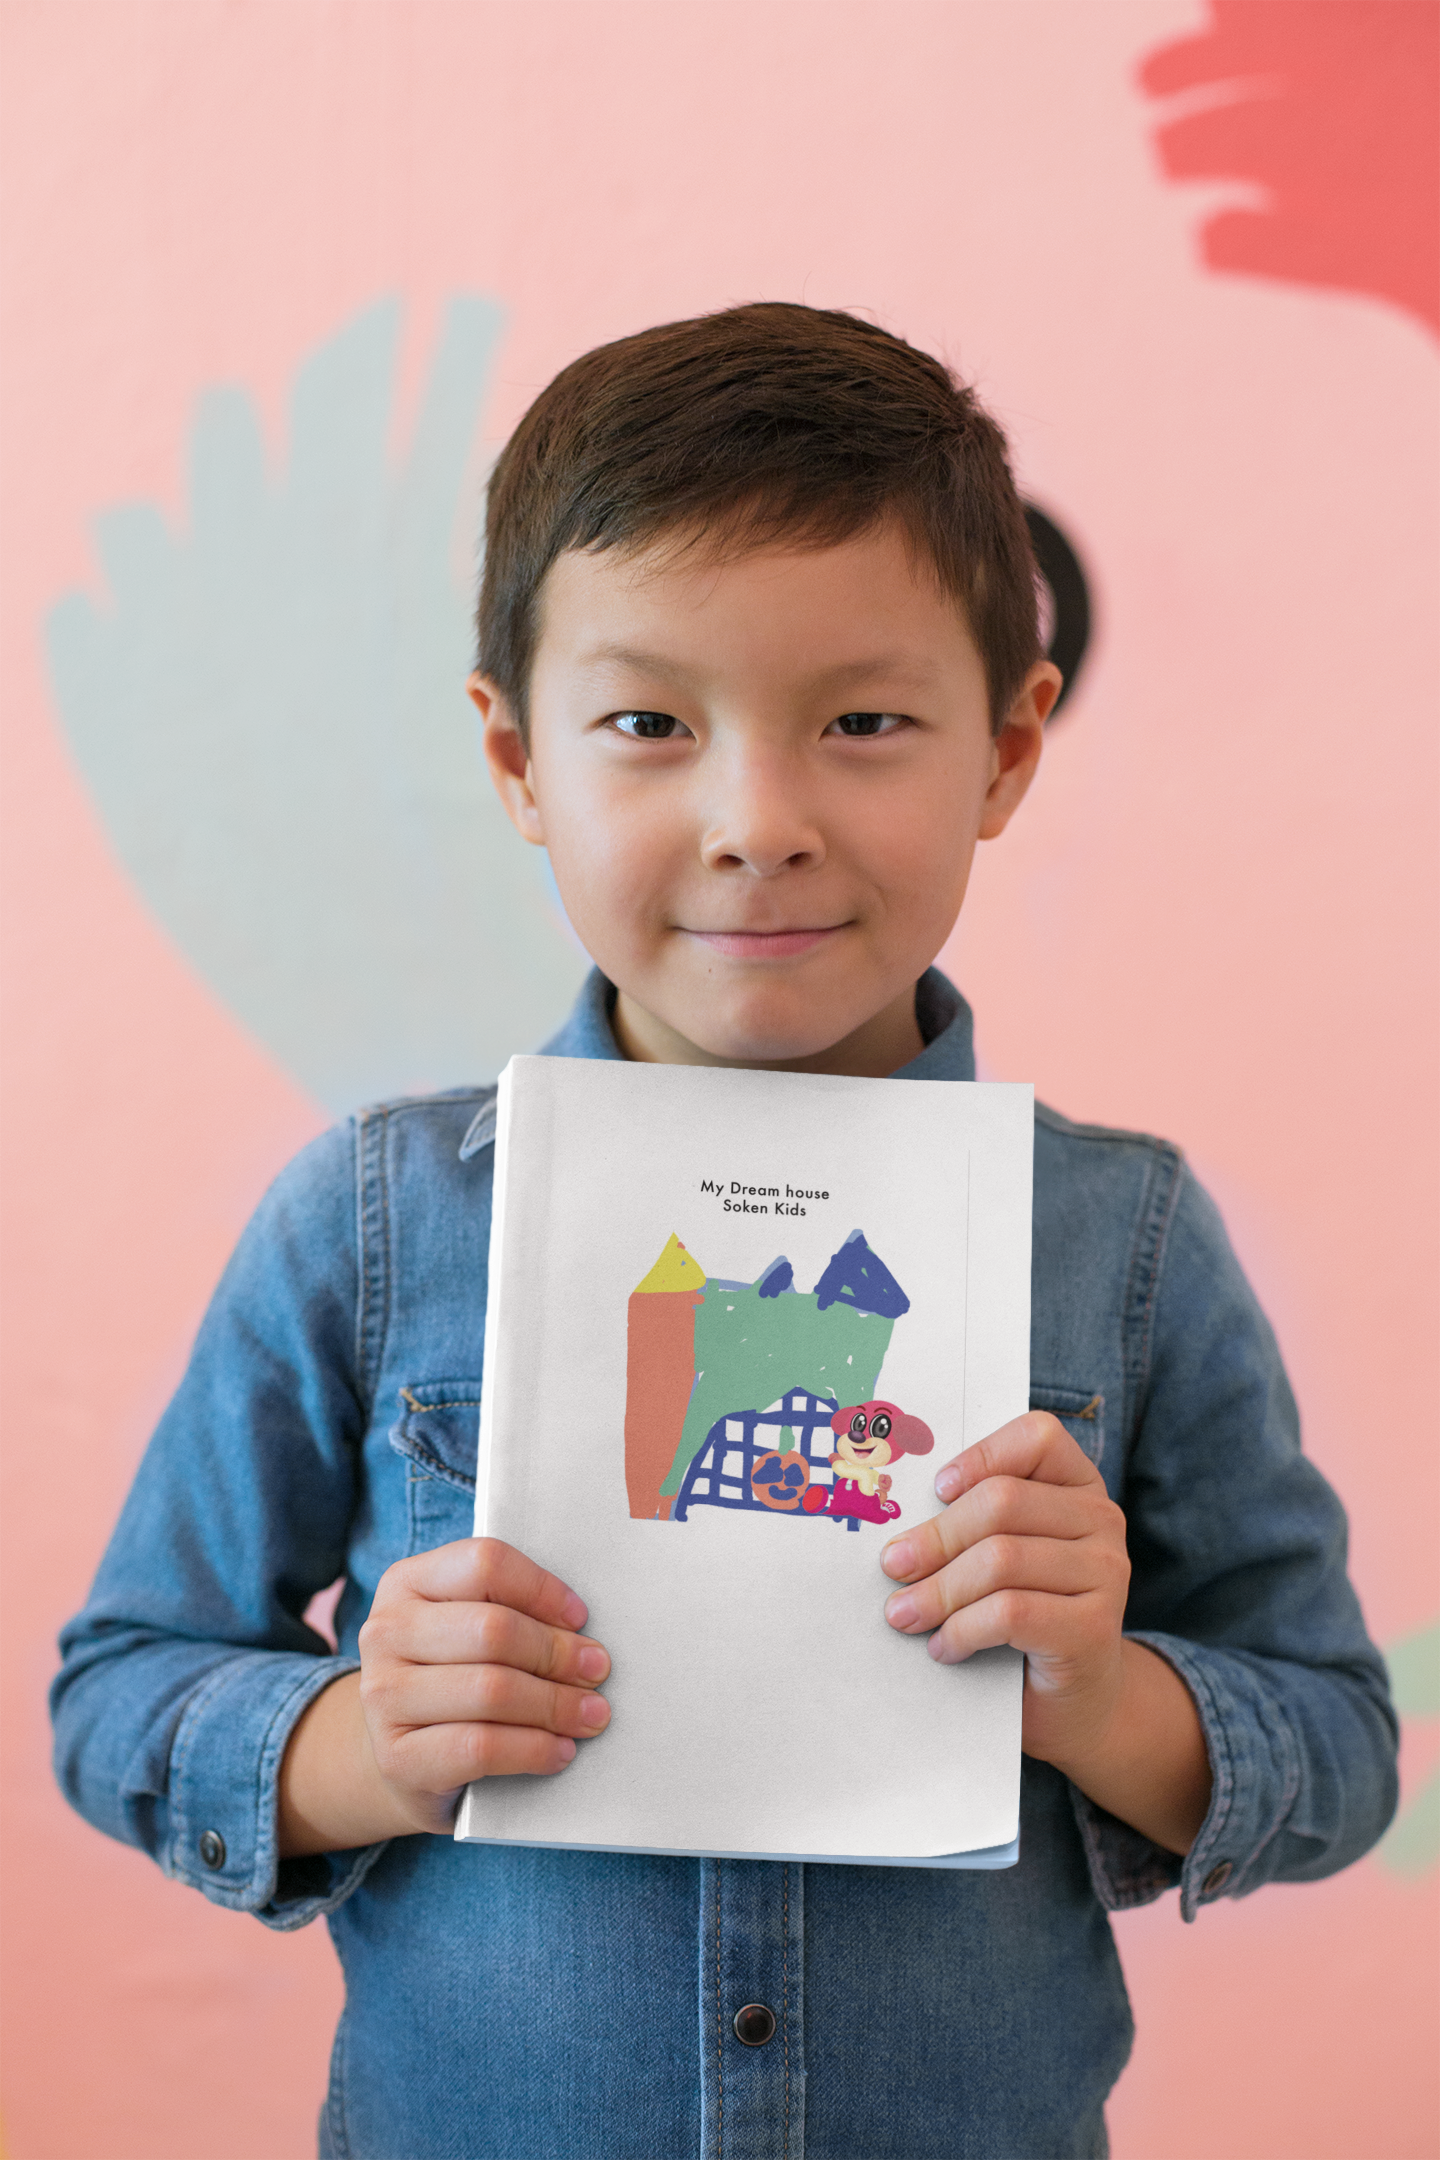 book-mockup-of-a-happy-kid-showing-off-his-book-23717 (2).png